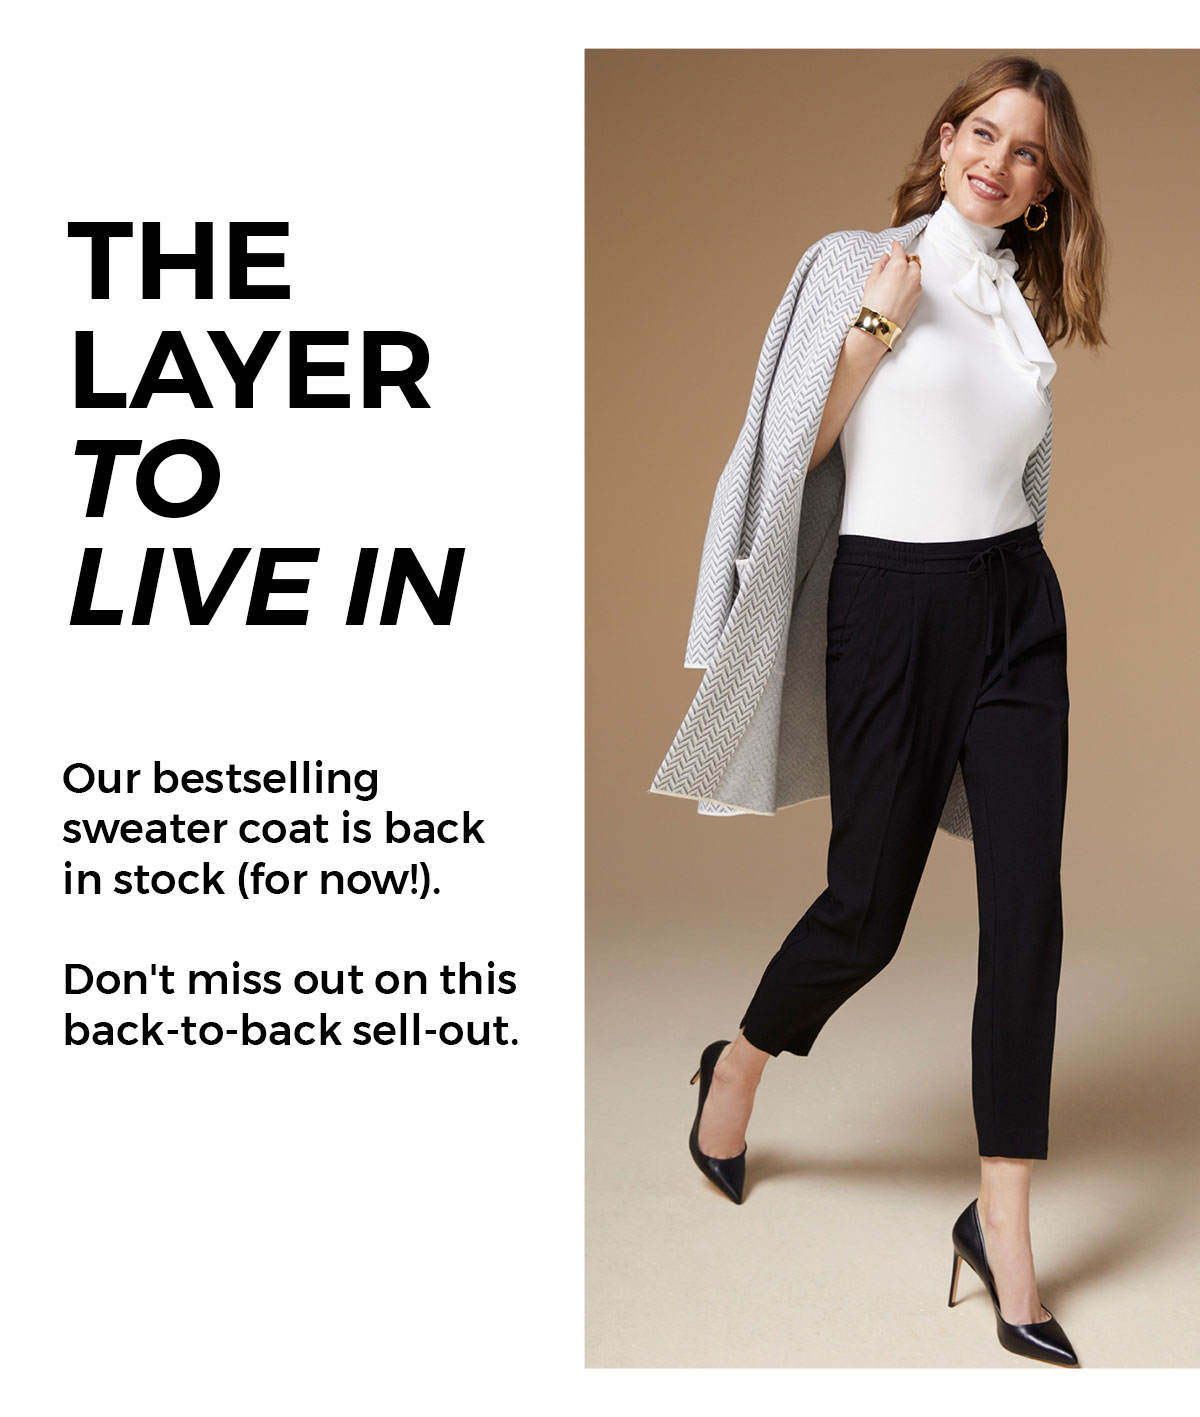 Our bestselling sweater coat is back in stock (for now!). Don't miss out on this back-to-back sell-out. CTA: Shop now